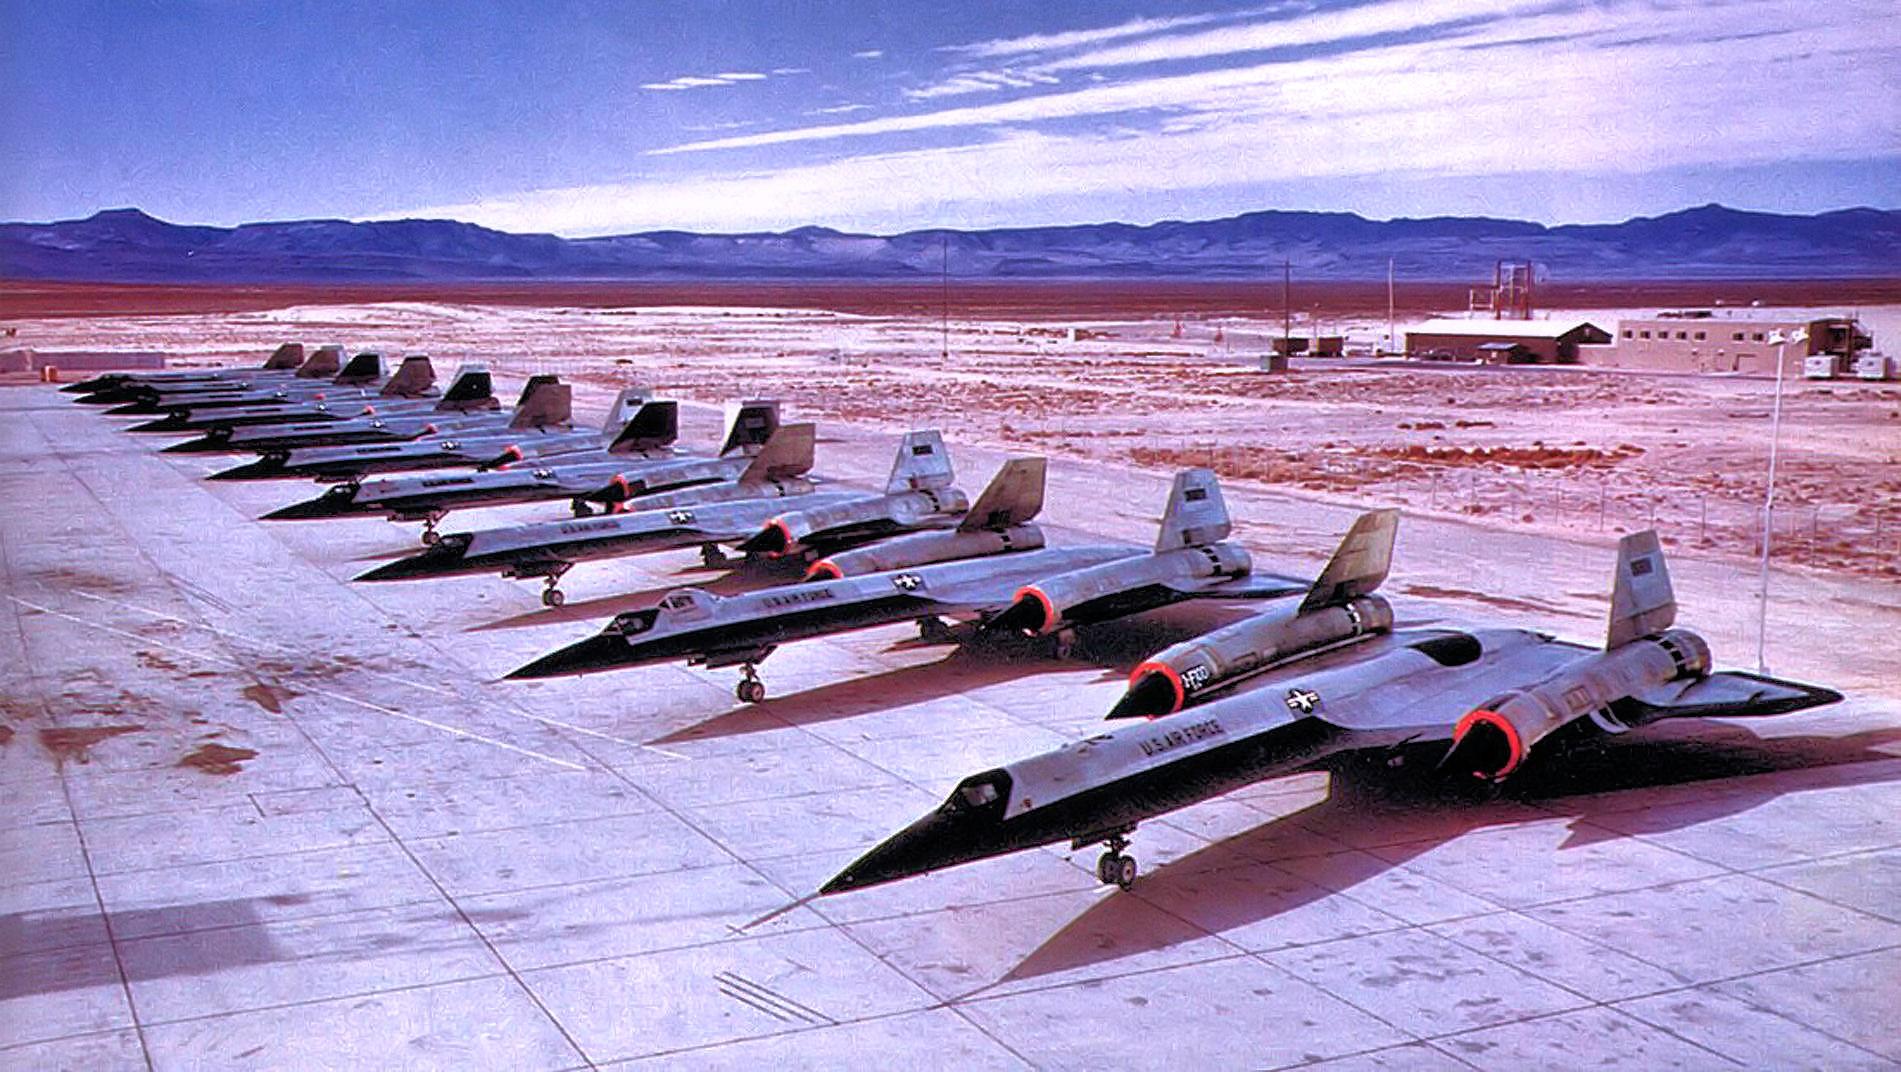 Ten_Lockheed_A-12s_at_Palmdale_%28Plant_